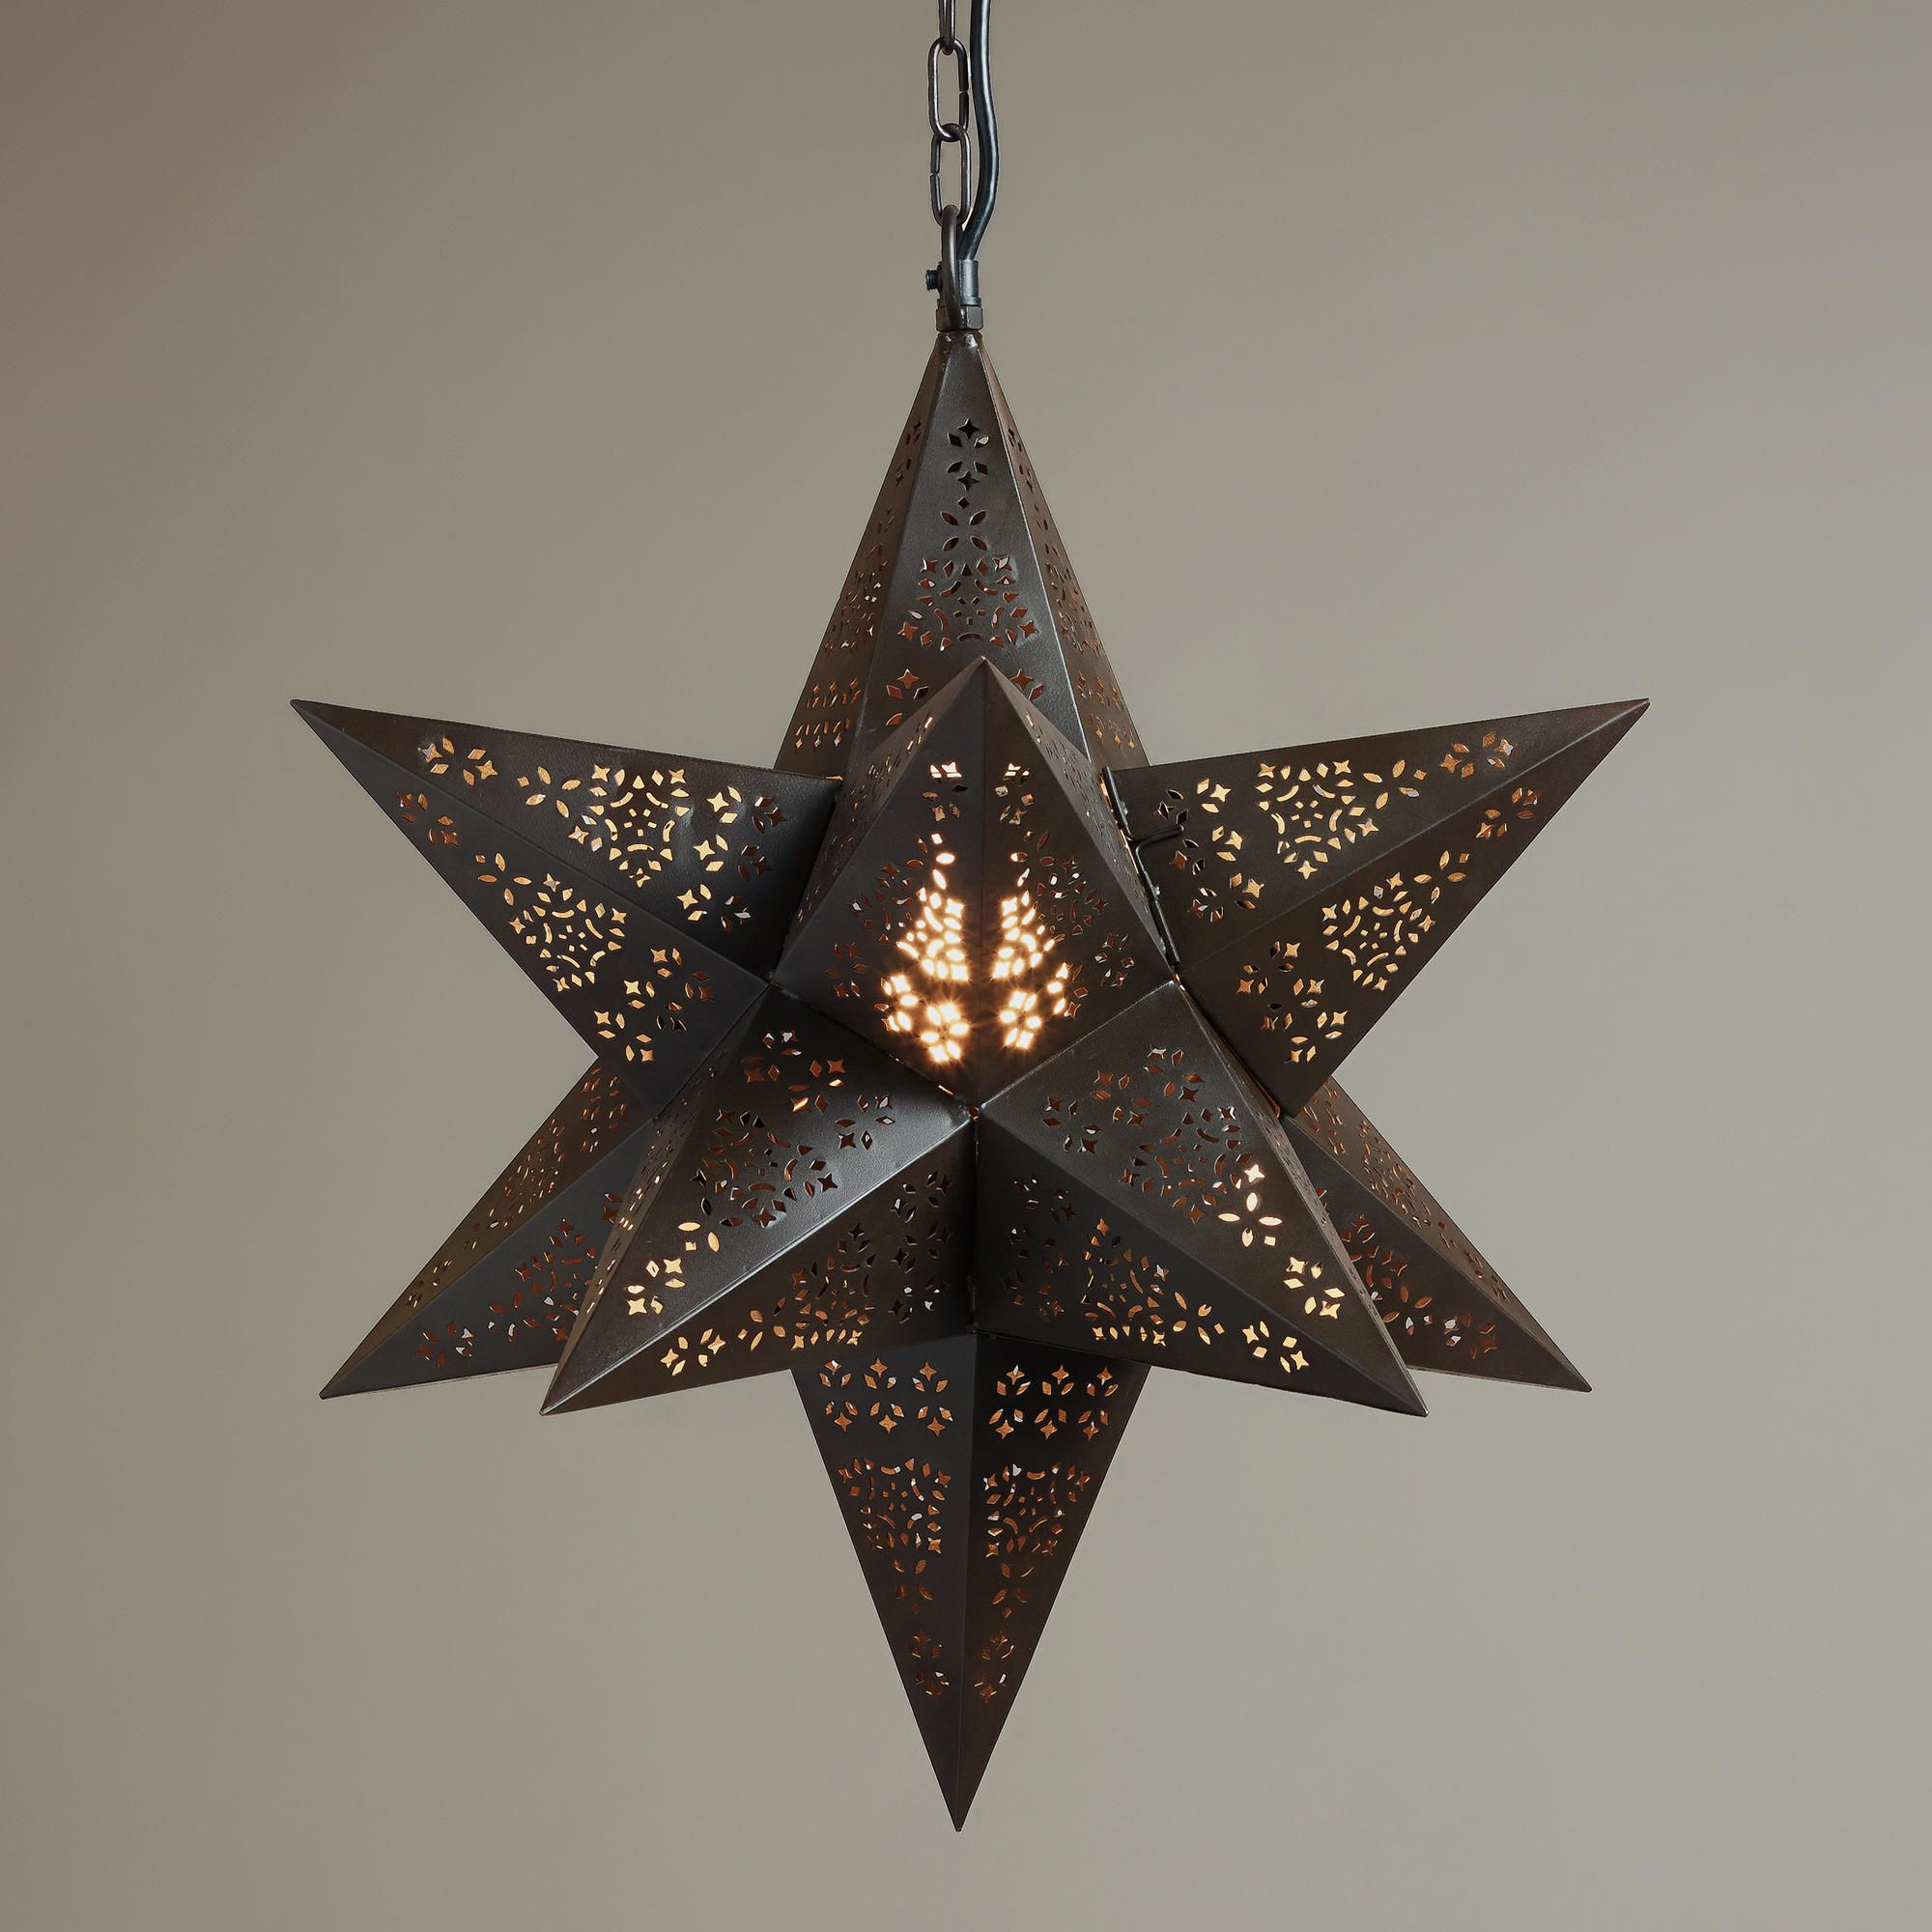 lighting salvaged energy fixtures pendant home exterior promise bathroom picks whimsy death with fixture list star moravian depot light